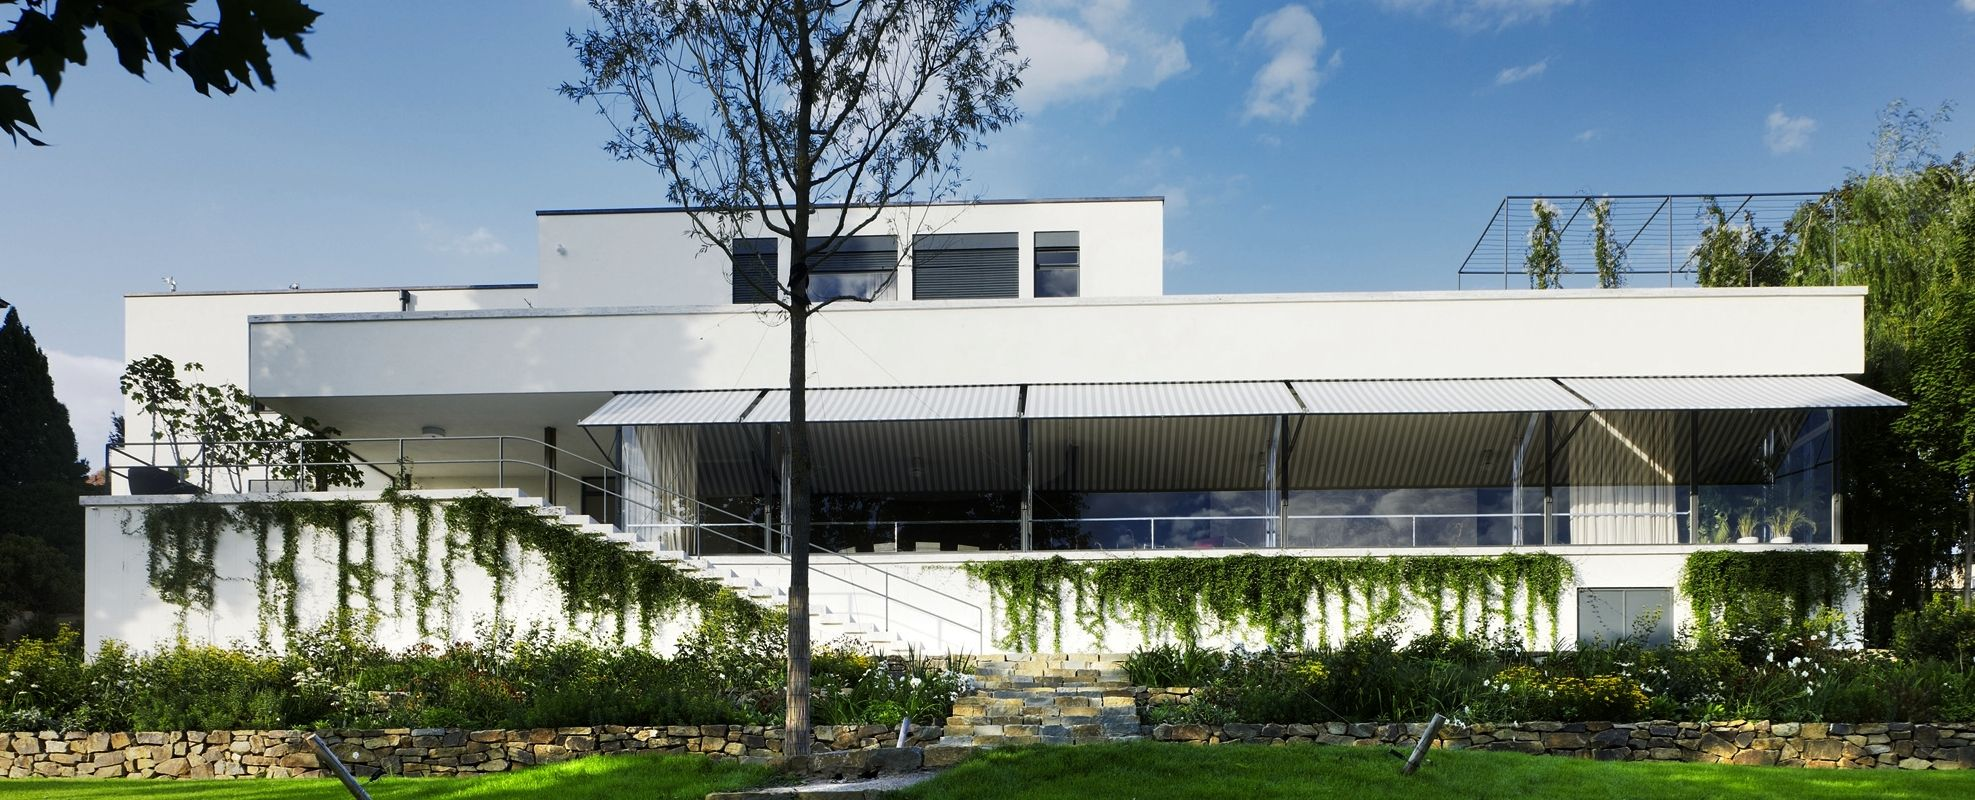 Villa Tugendhat designed by Ludwig Mies van der Rohe in